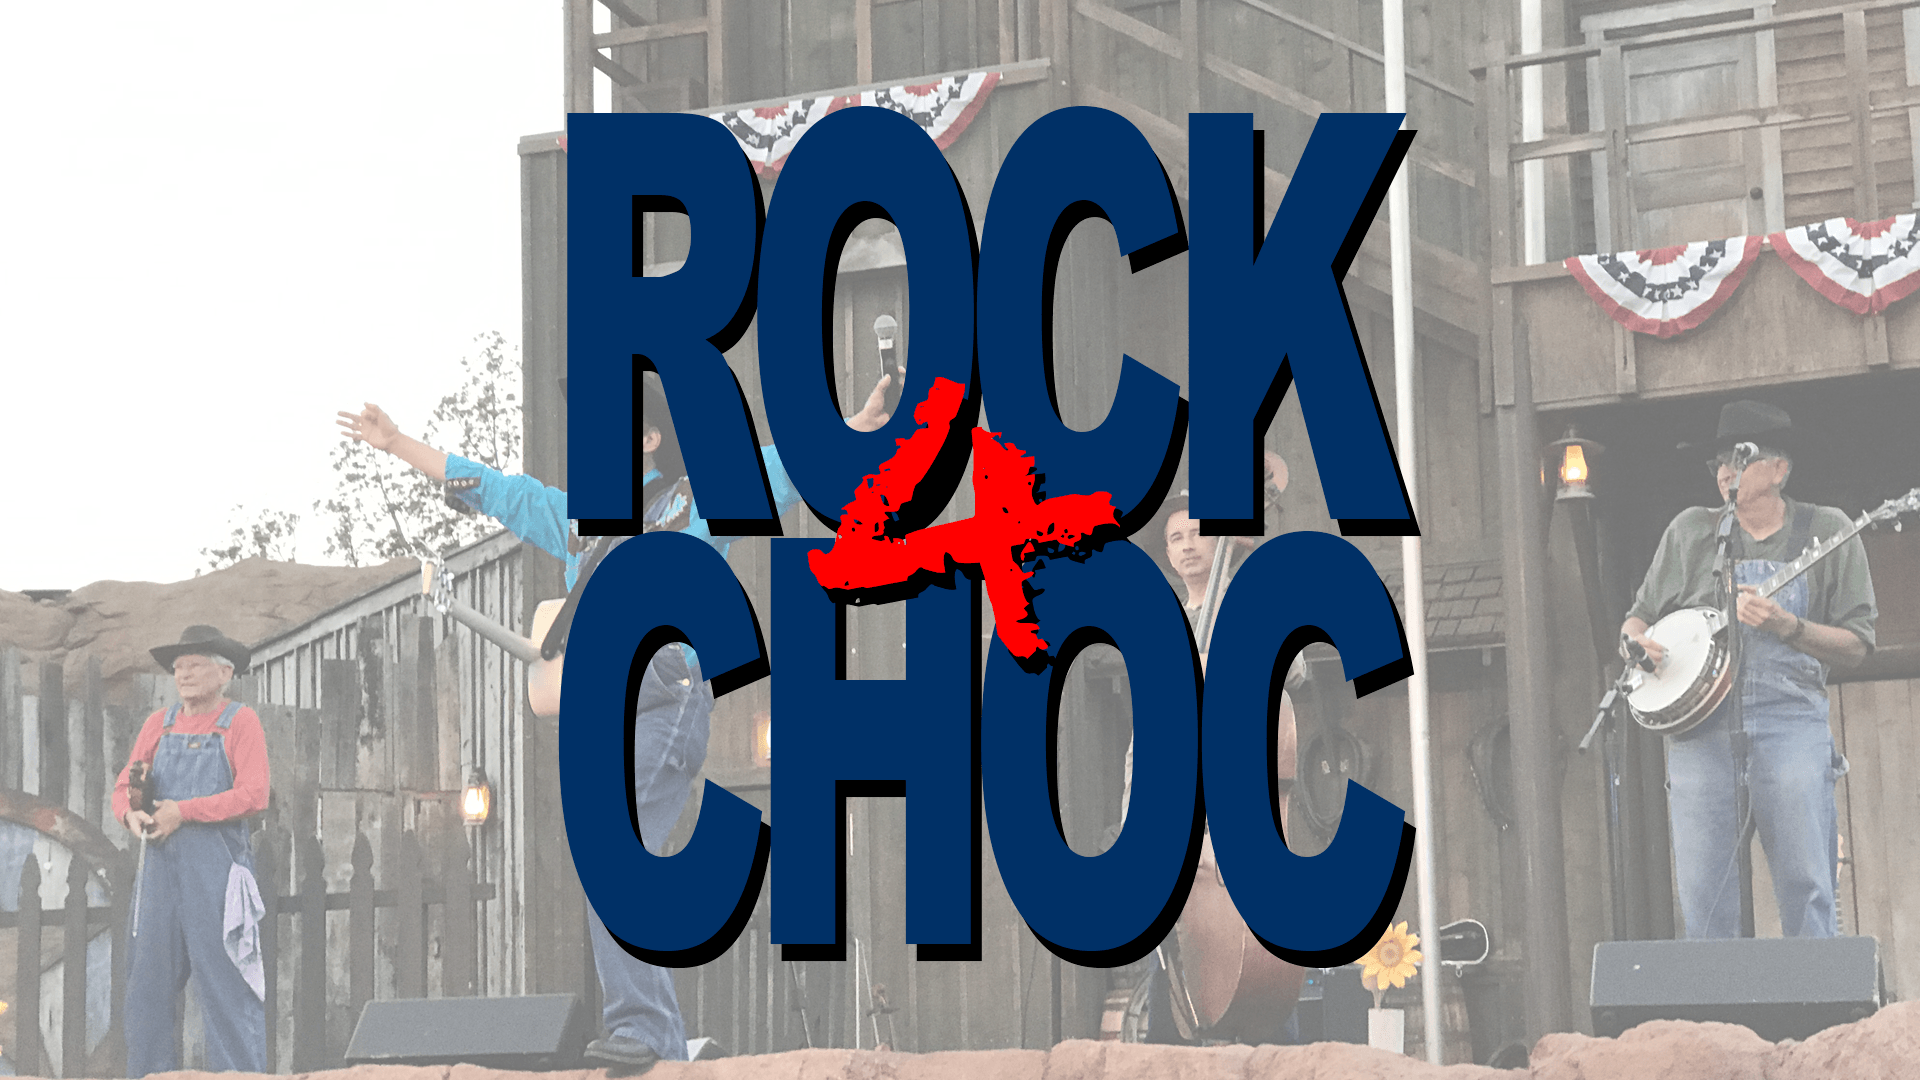 ROCK4CHOC with Krazy Kirk and the Hillbillies